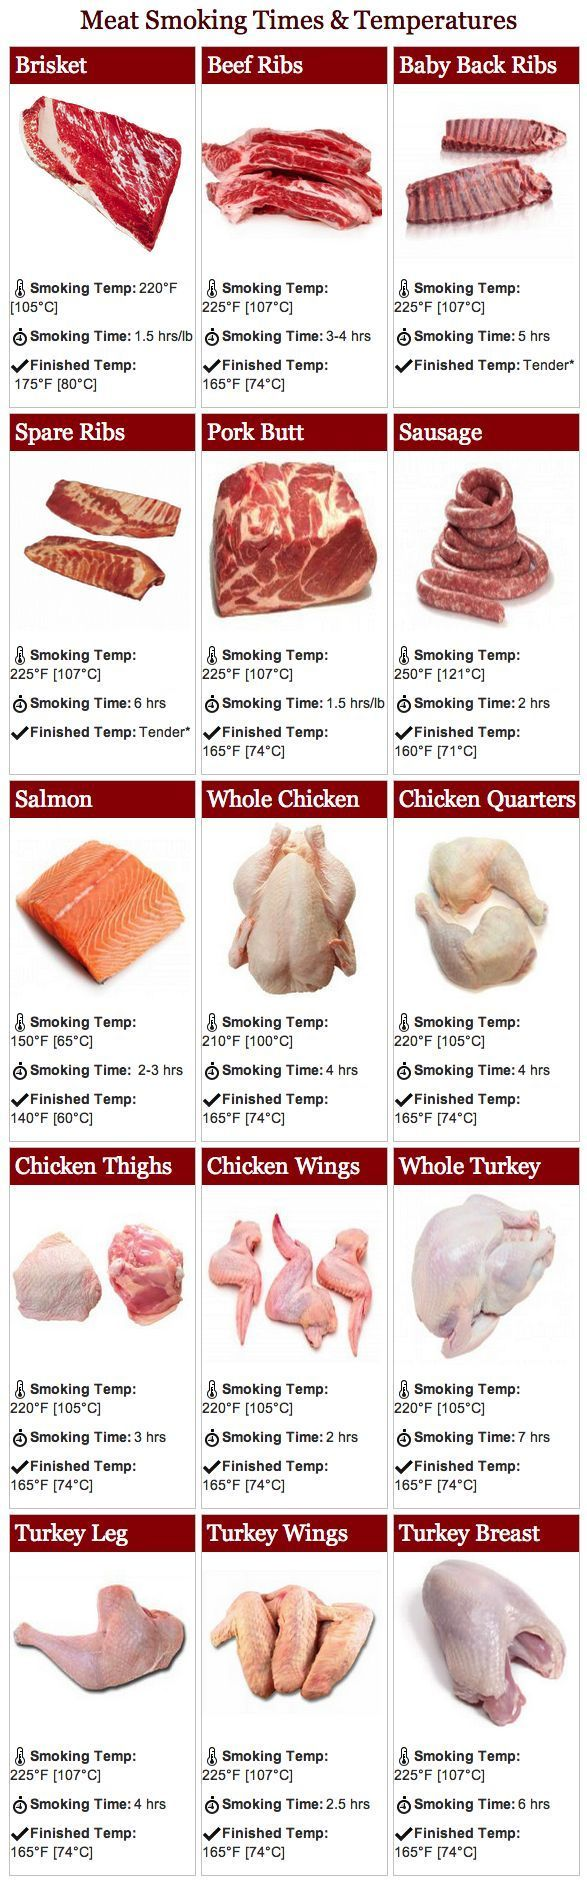 Cheat sheet on meat smoking times and temperatures from Bradley Smoker! Maybe one day I will attempt this on someone's smoker.